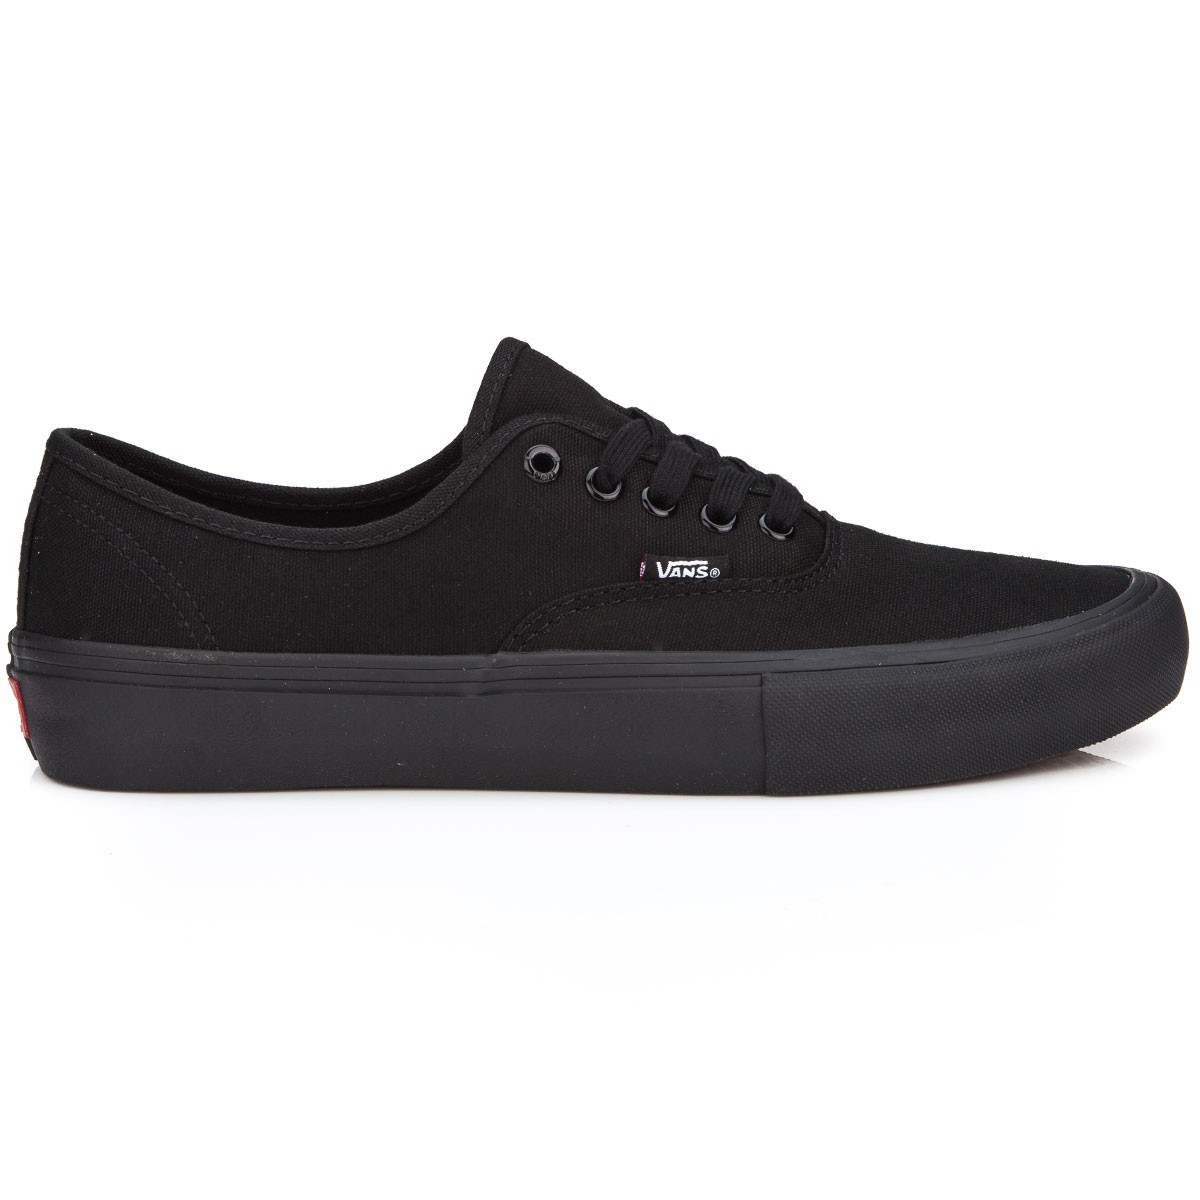 Vans Authentic Pro Shoes - Black Black - 10.0 7bbc374dd27